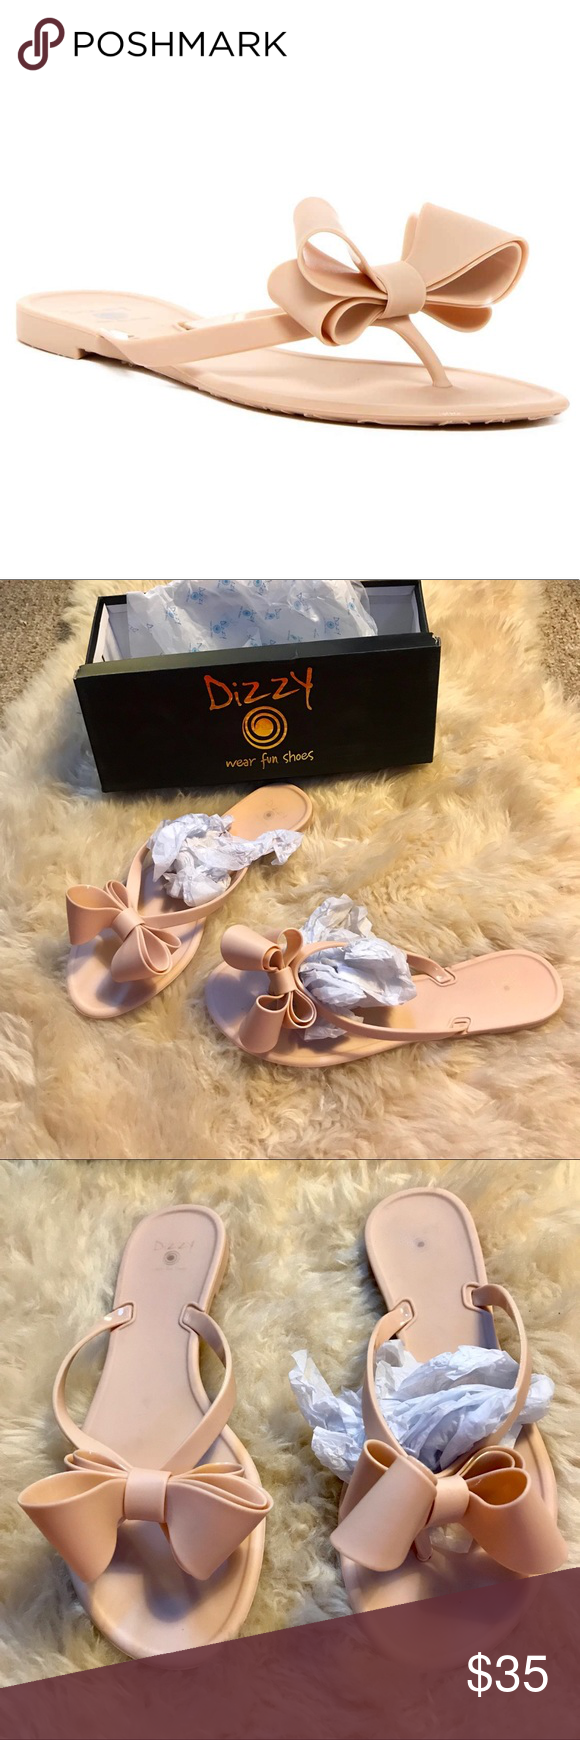 9de9b163399 New PVC Dizzy Bow Flip Flops in Matte Cream SZ 7.5 Brand new in box.